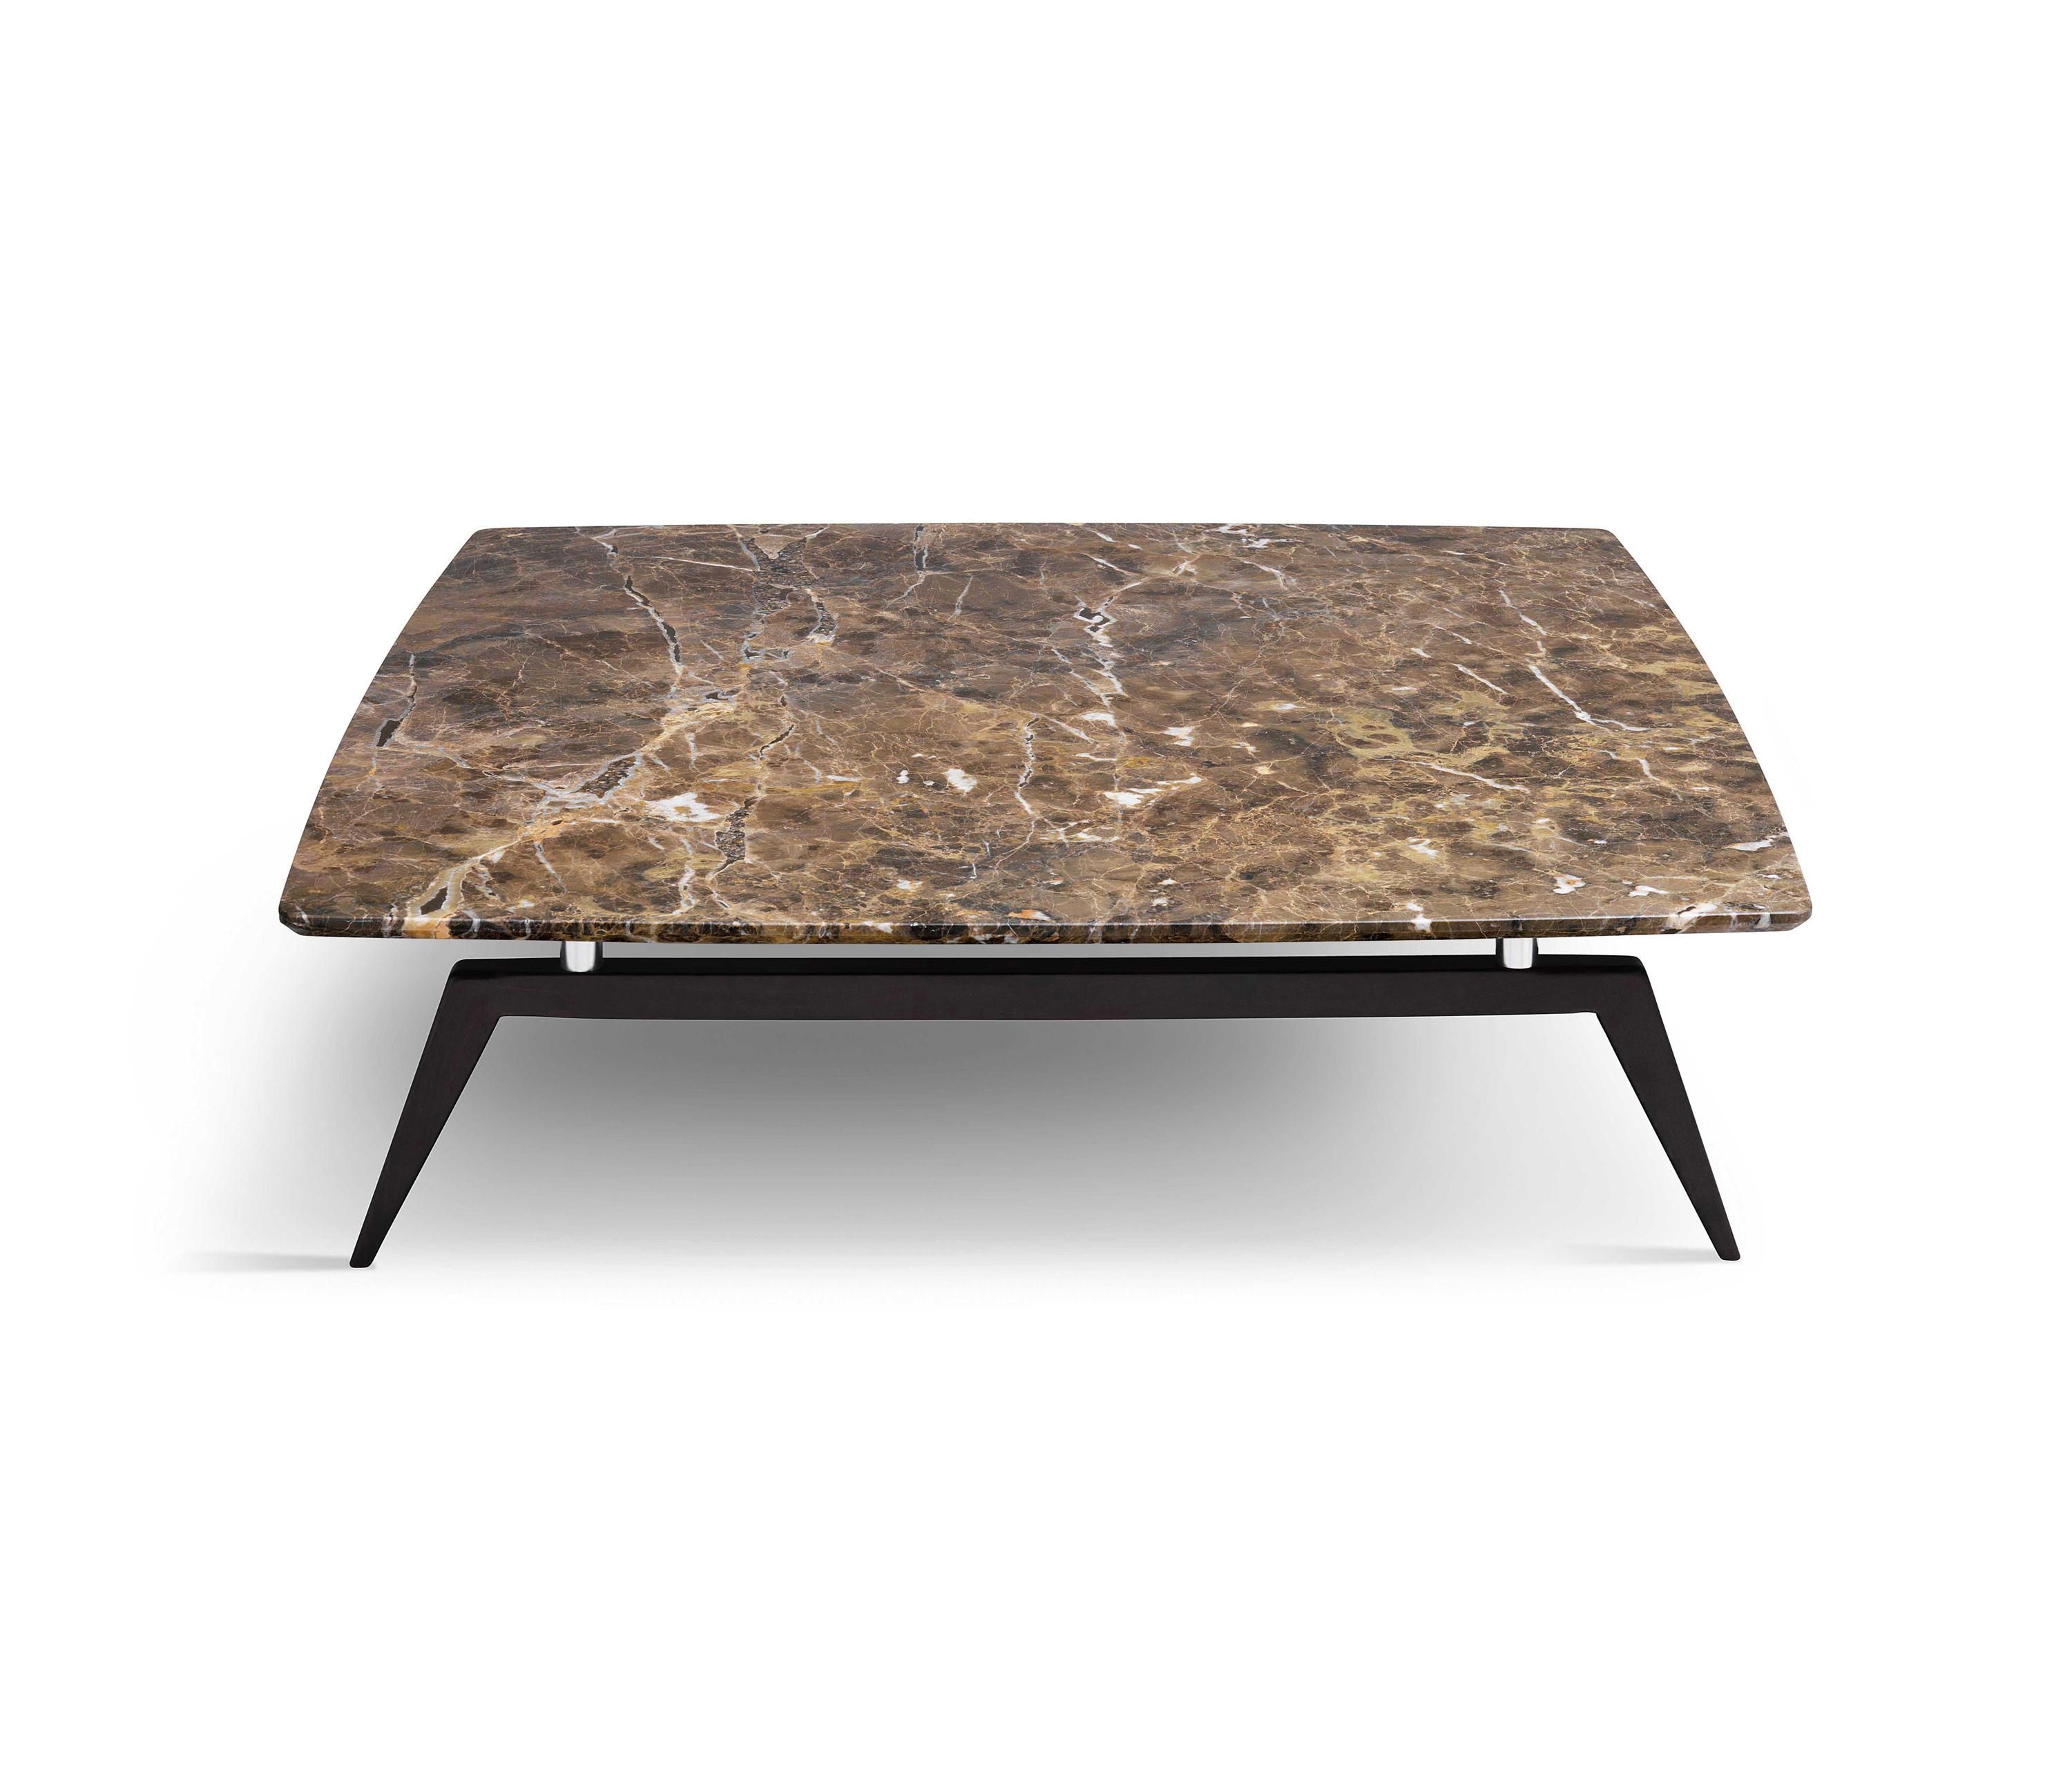 David Designer Lounge Tables From Ditre Italia All Information High Resolution Images Cads Catalogues Contac Coffee Table Coffee Table Design Table [ 2564 x 3000 Pixel ]